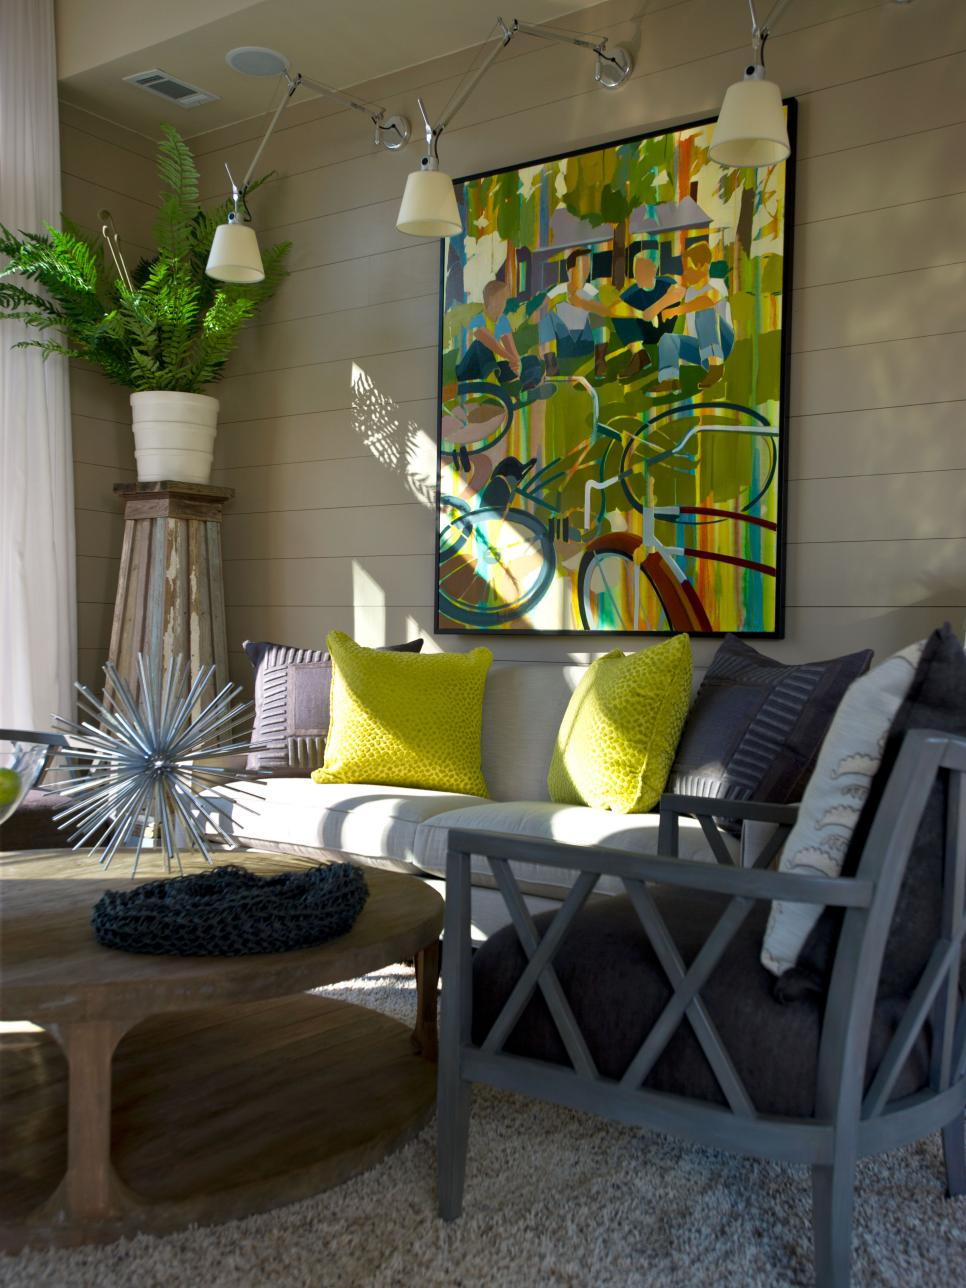 Small Living Rooms Decorating Hgtv: HGTV Green Home 2012: Living Room Pictures